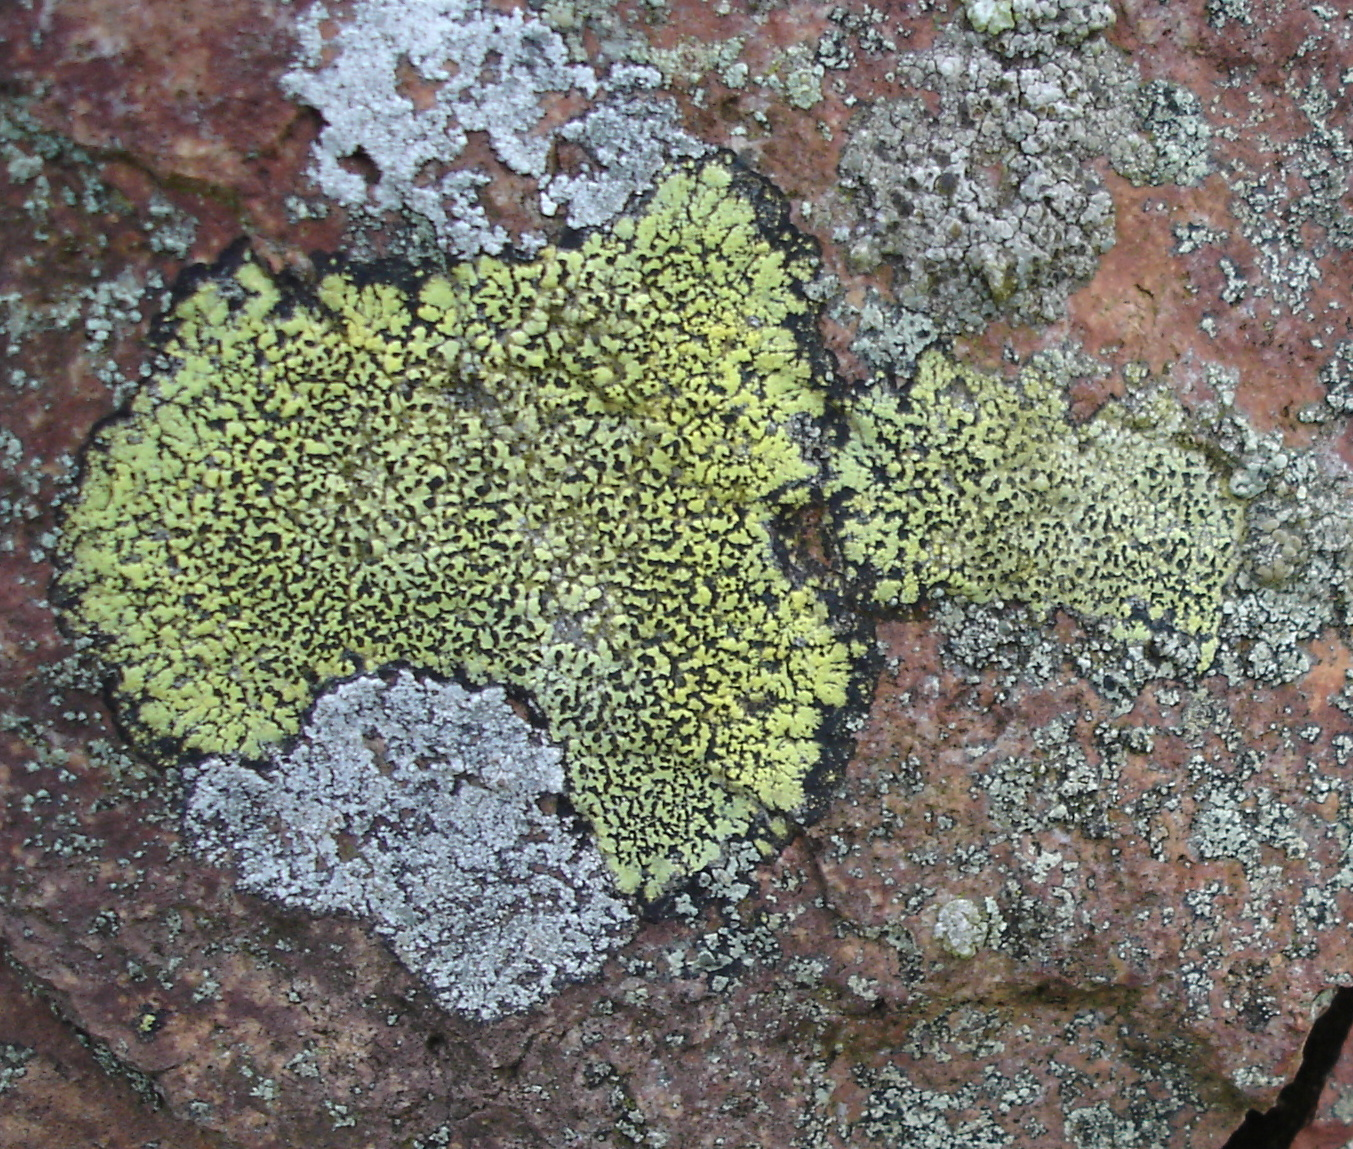 lichens on rocks